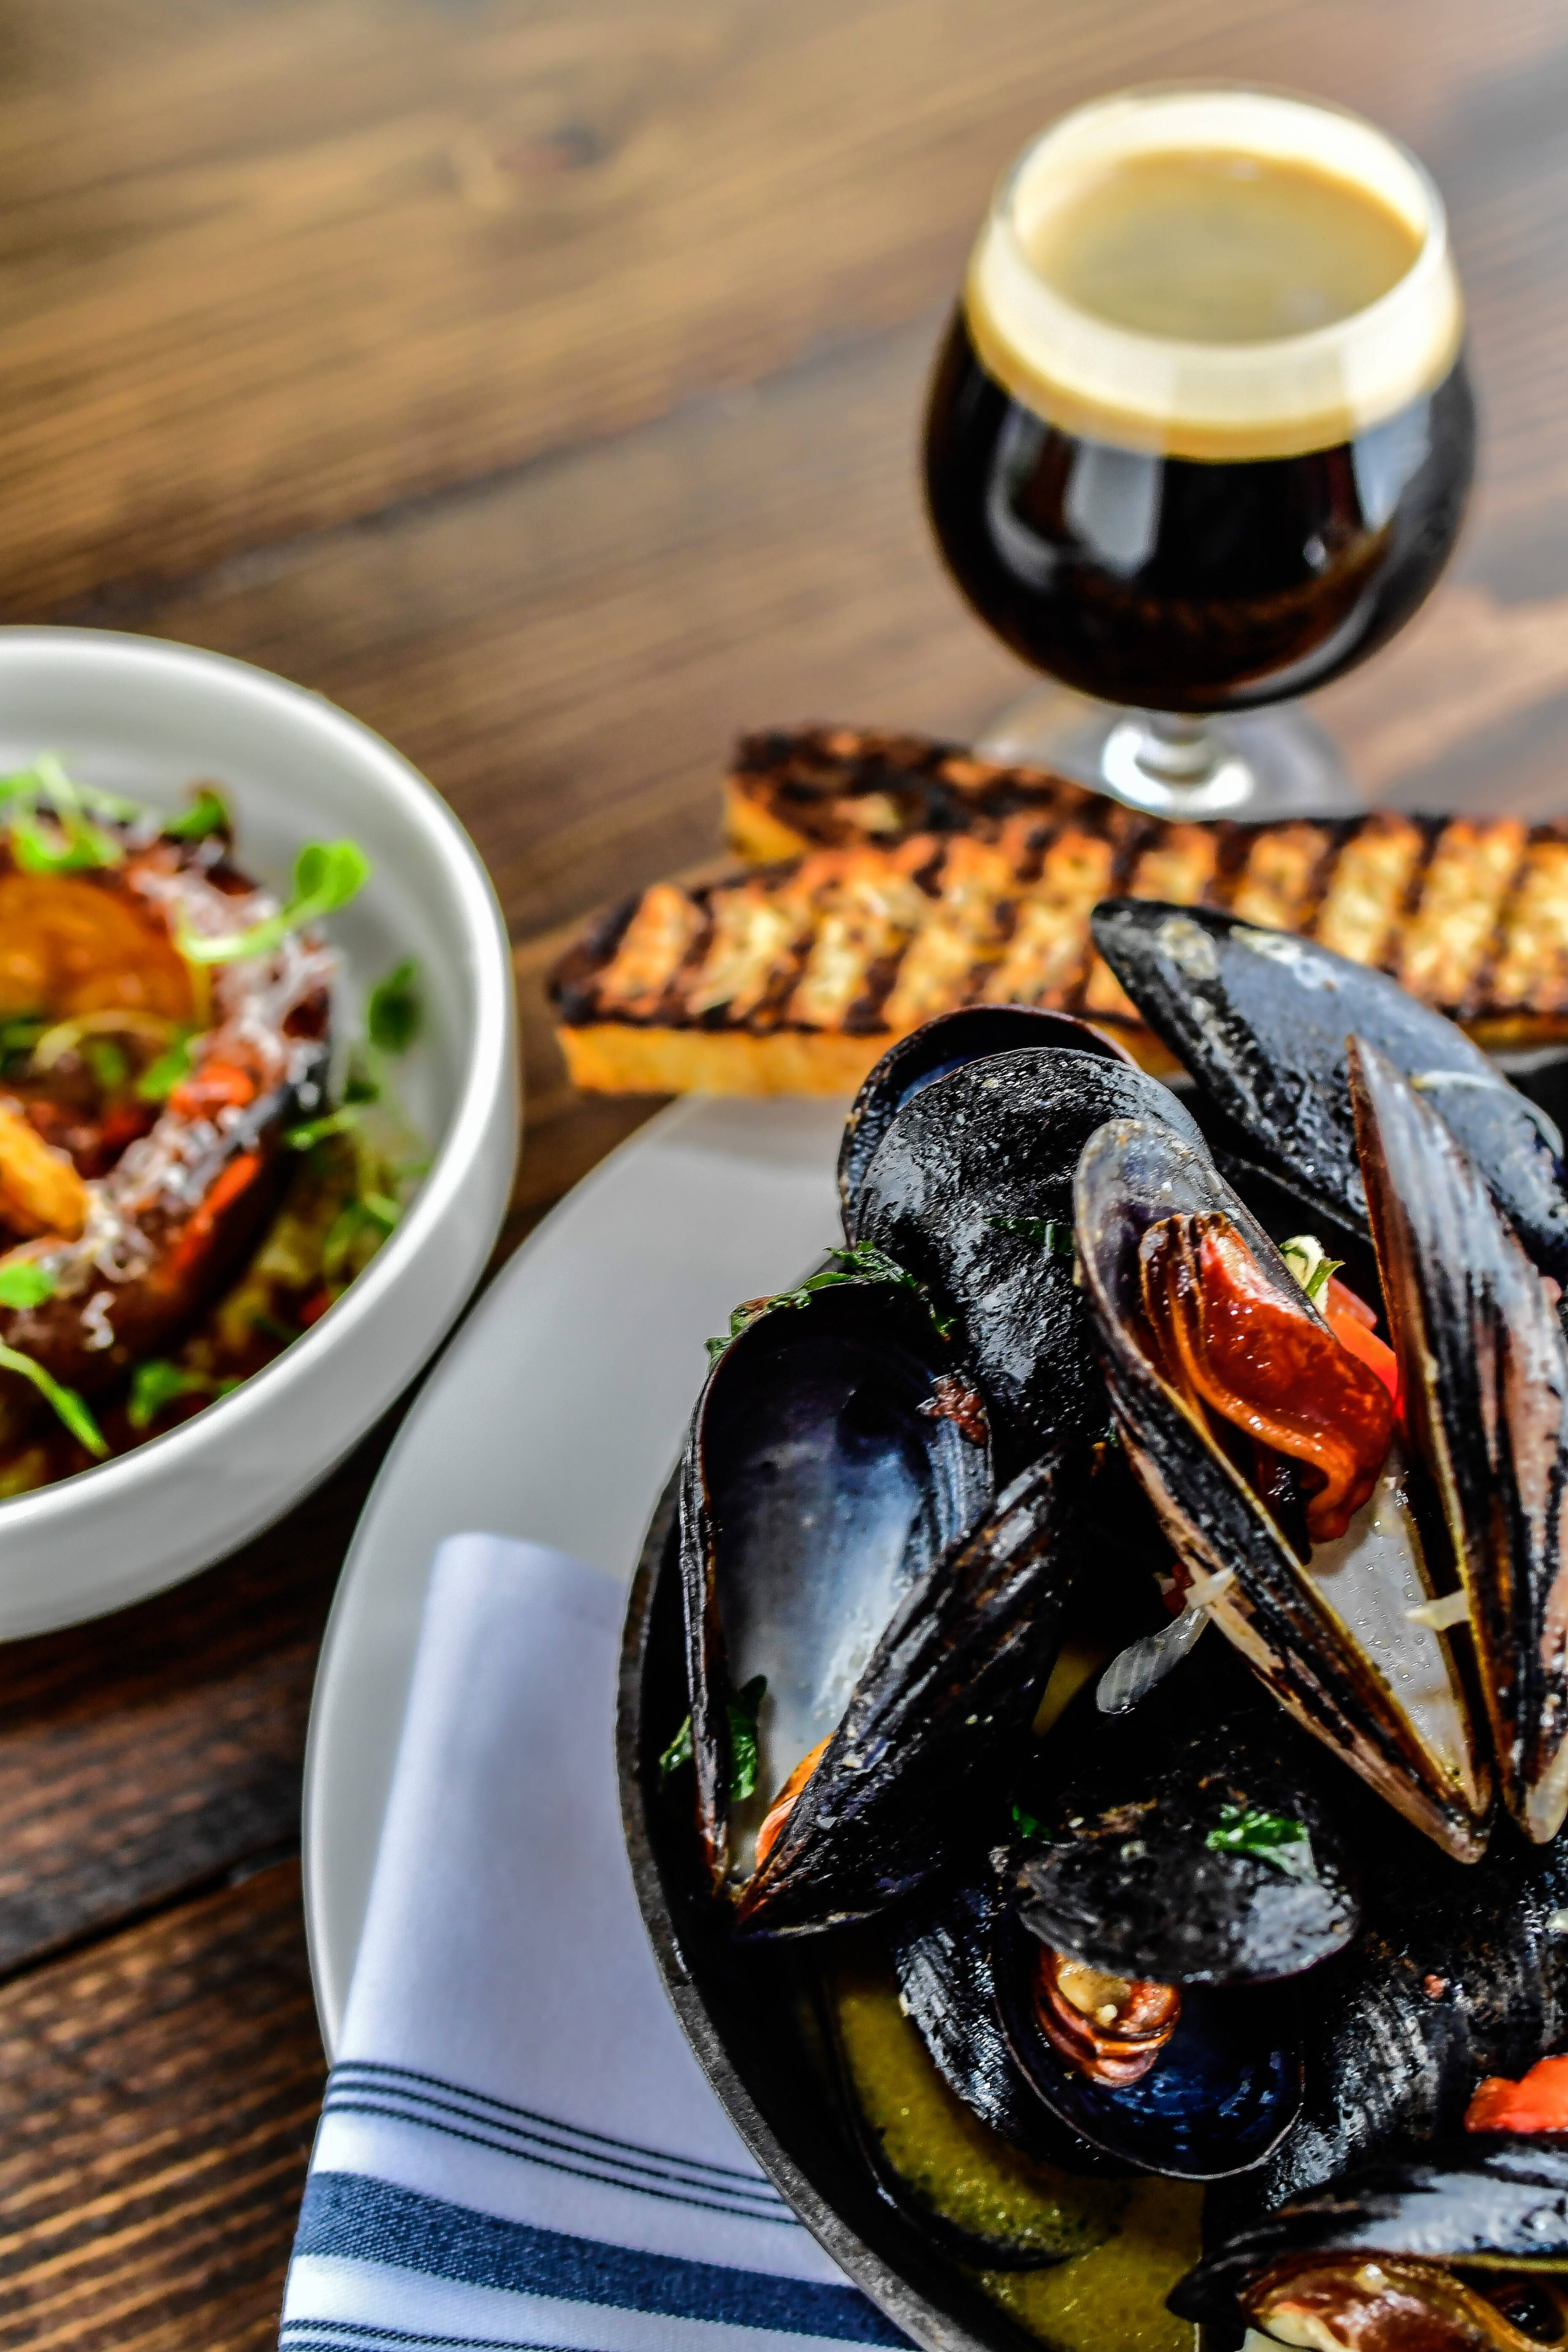 Seafood items such as steamed East Coast black mussels are found on the menu at Old Irving Brewing Co.